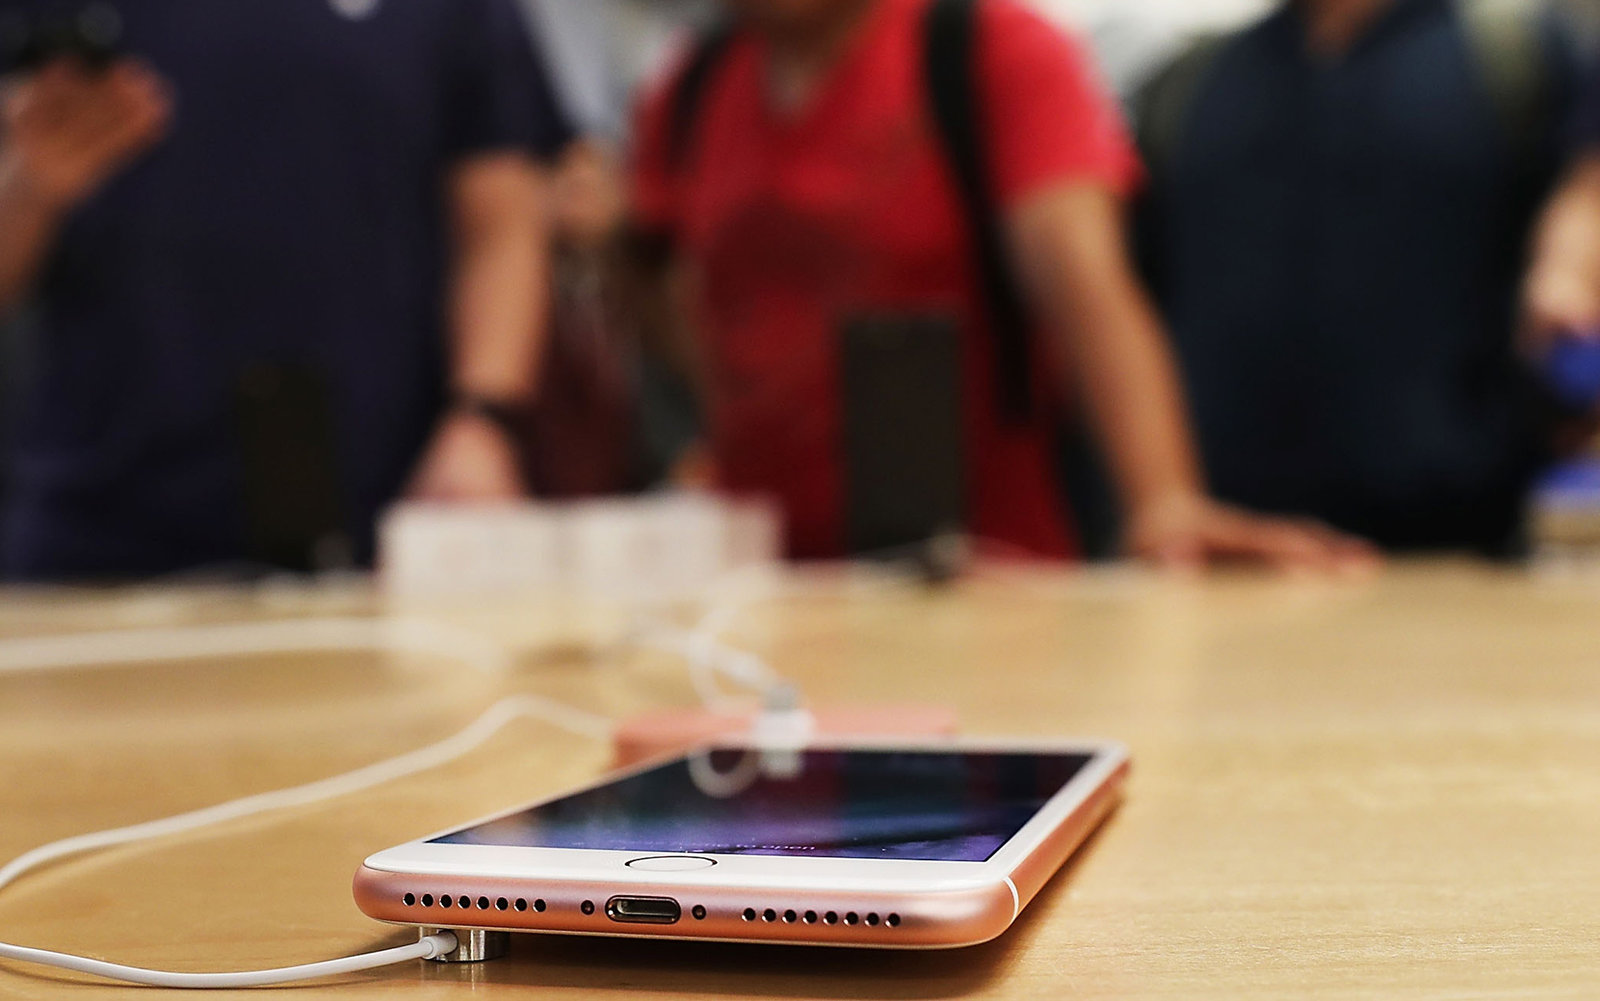 They Replaced the Headphone Jack With Nothing